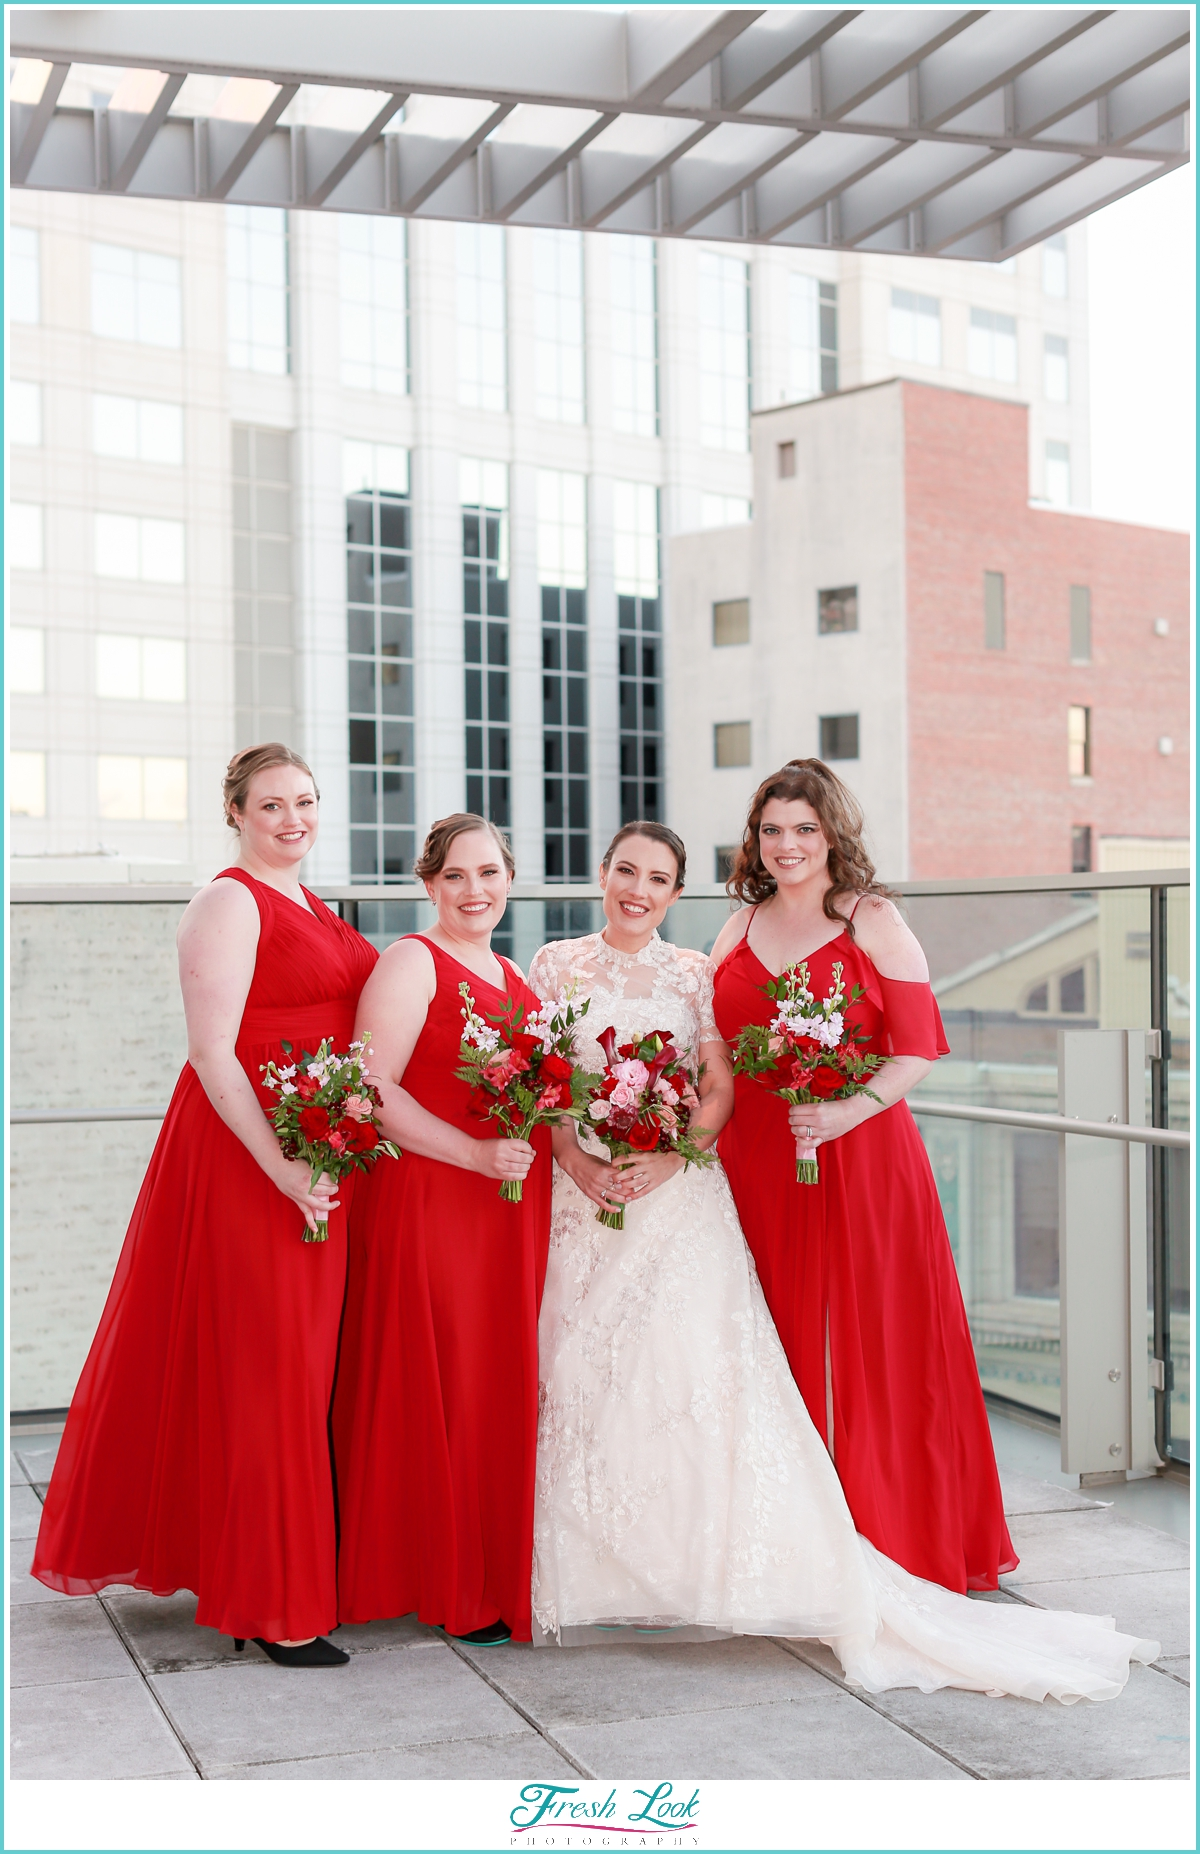 bridesmaid dresses wearing red dresses